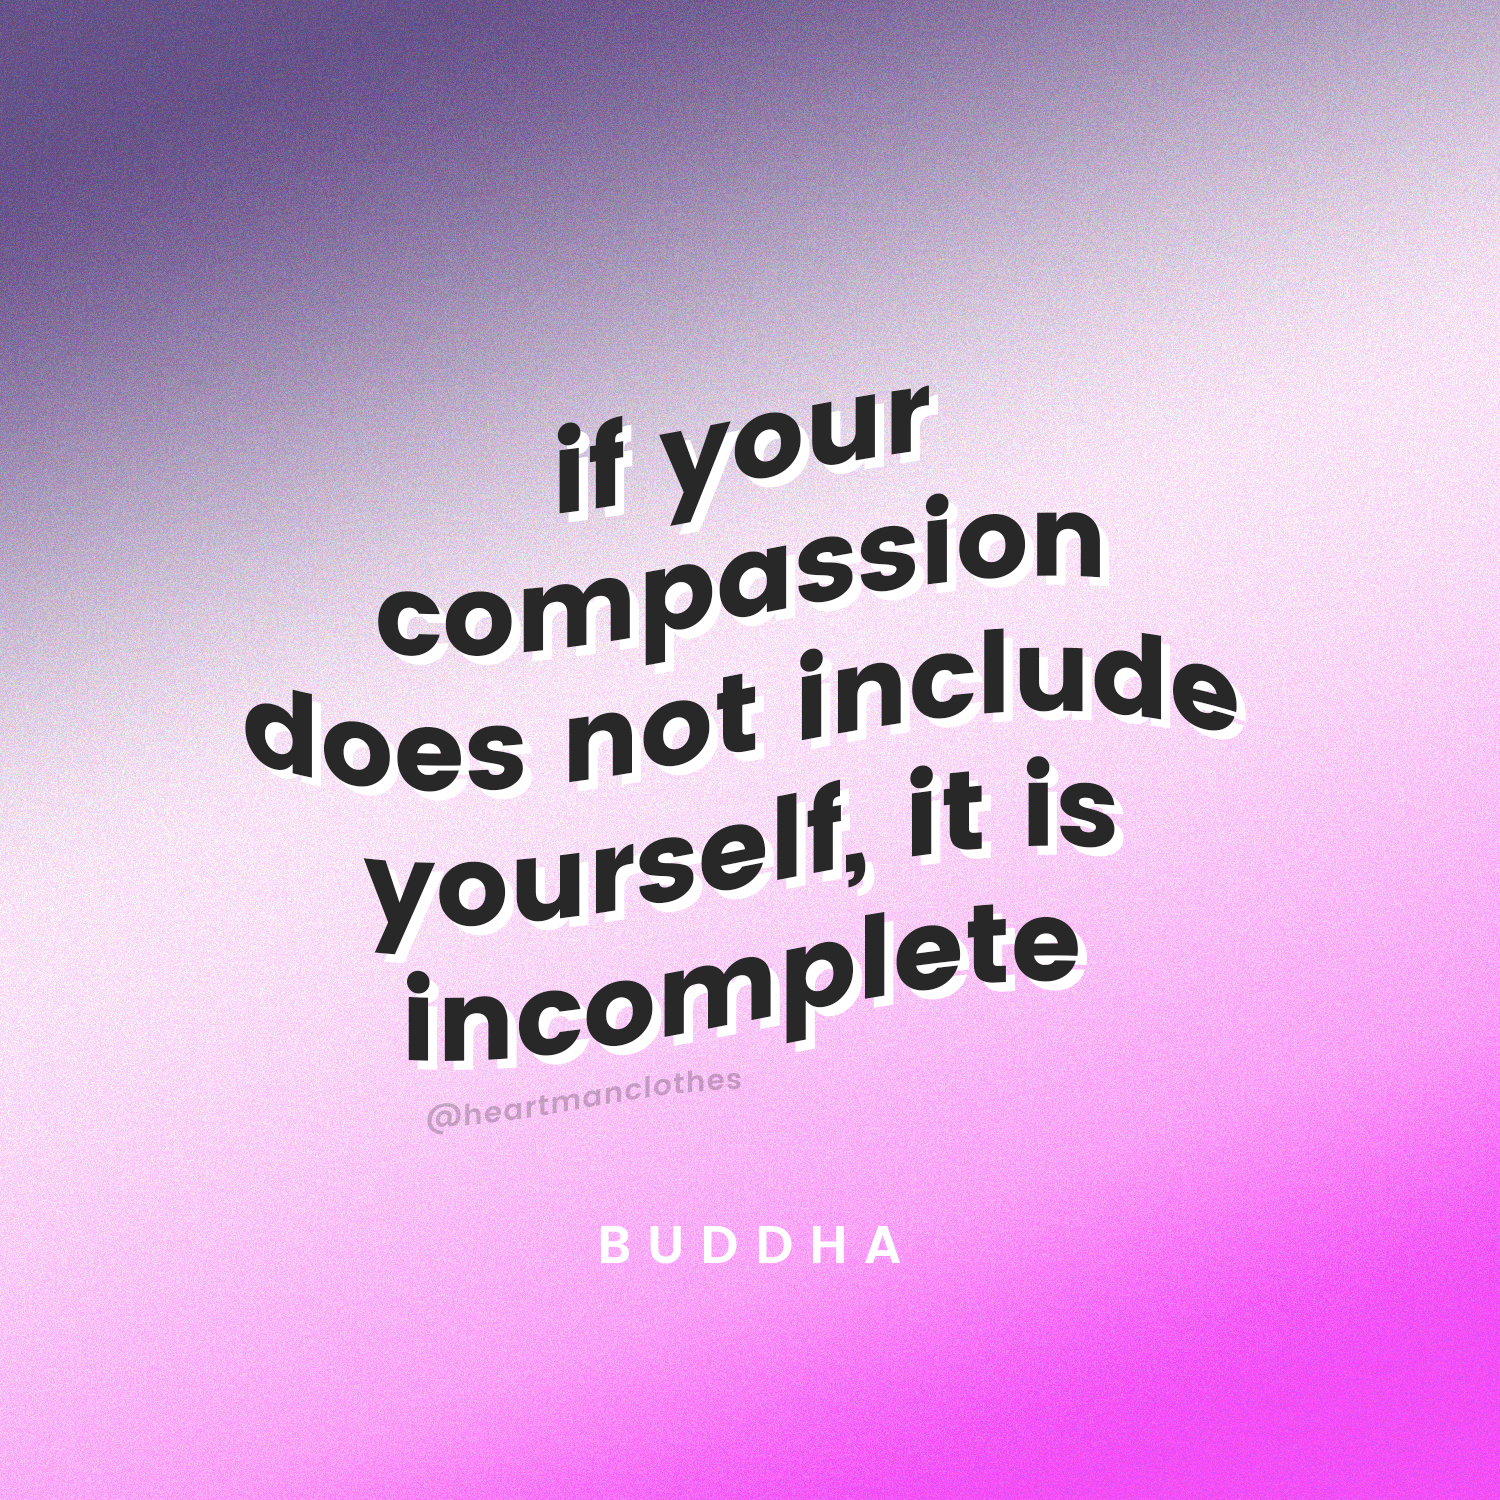 compassion-incomplete.jpg